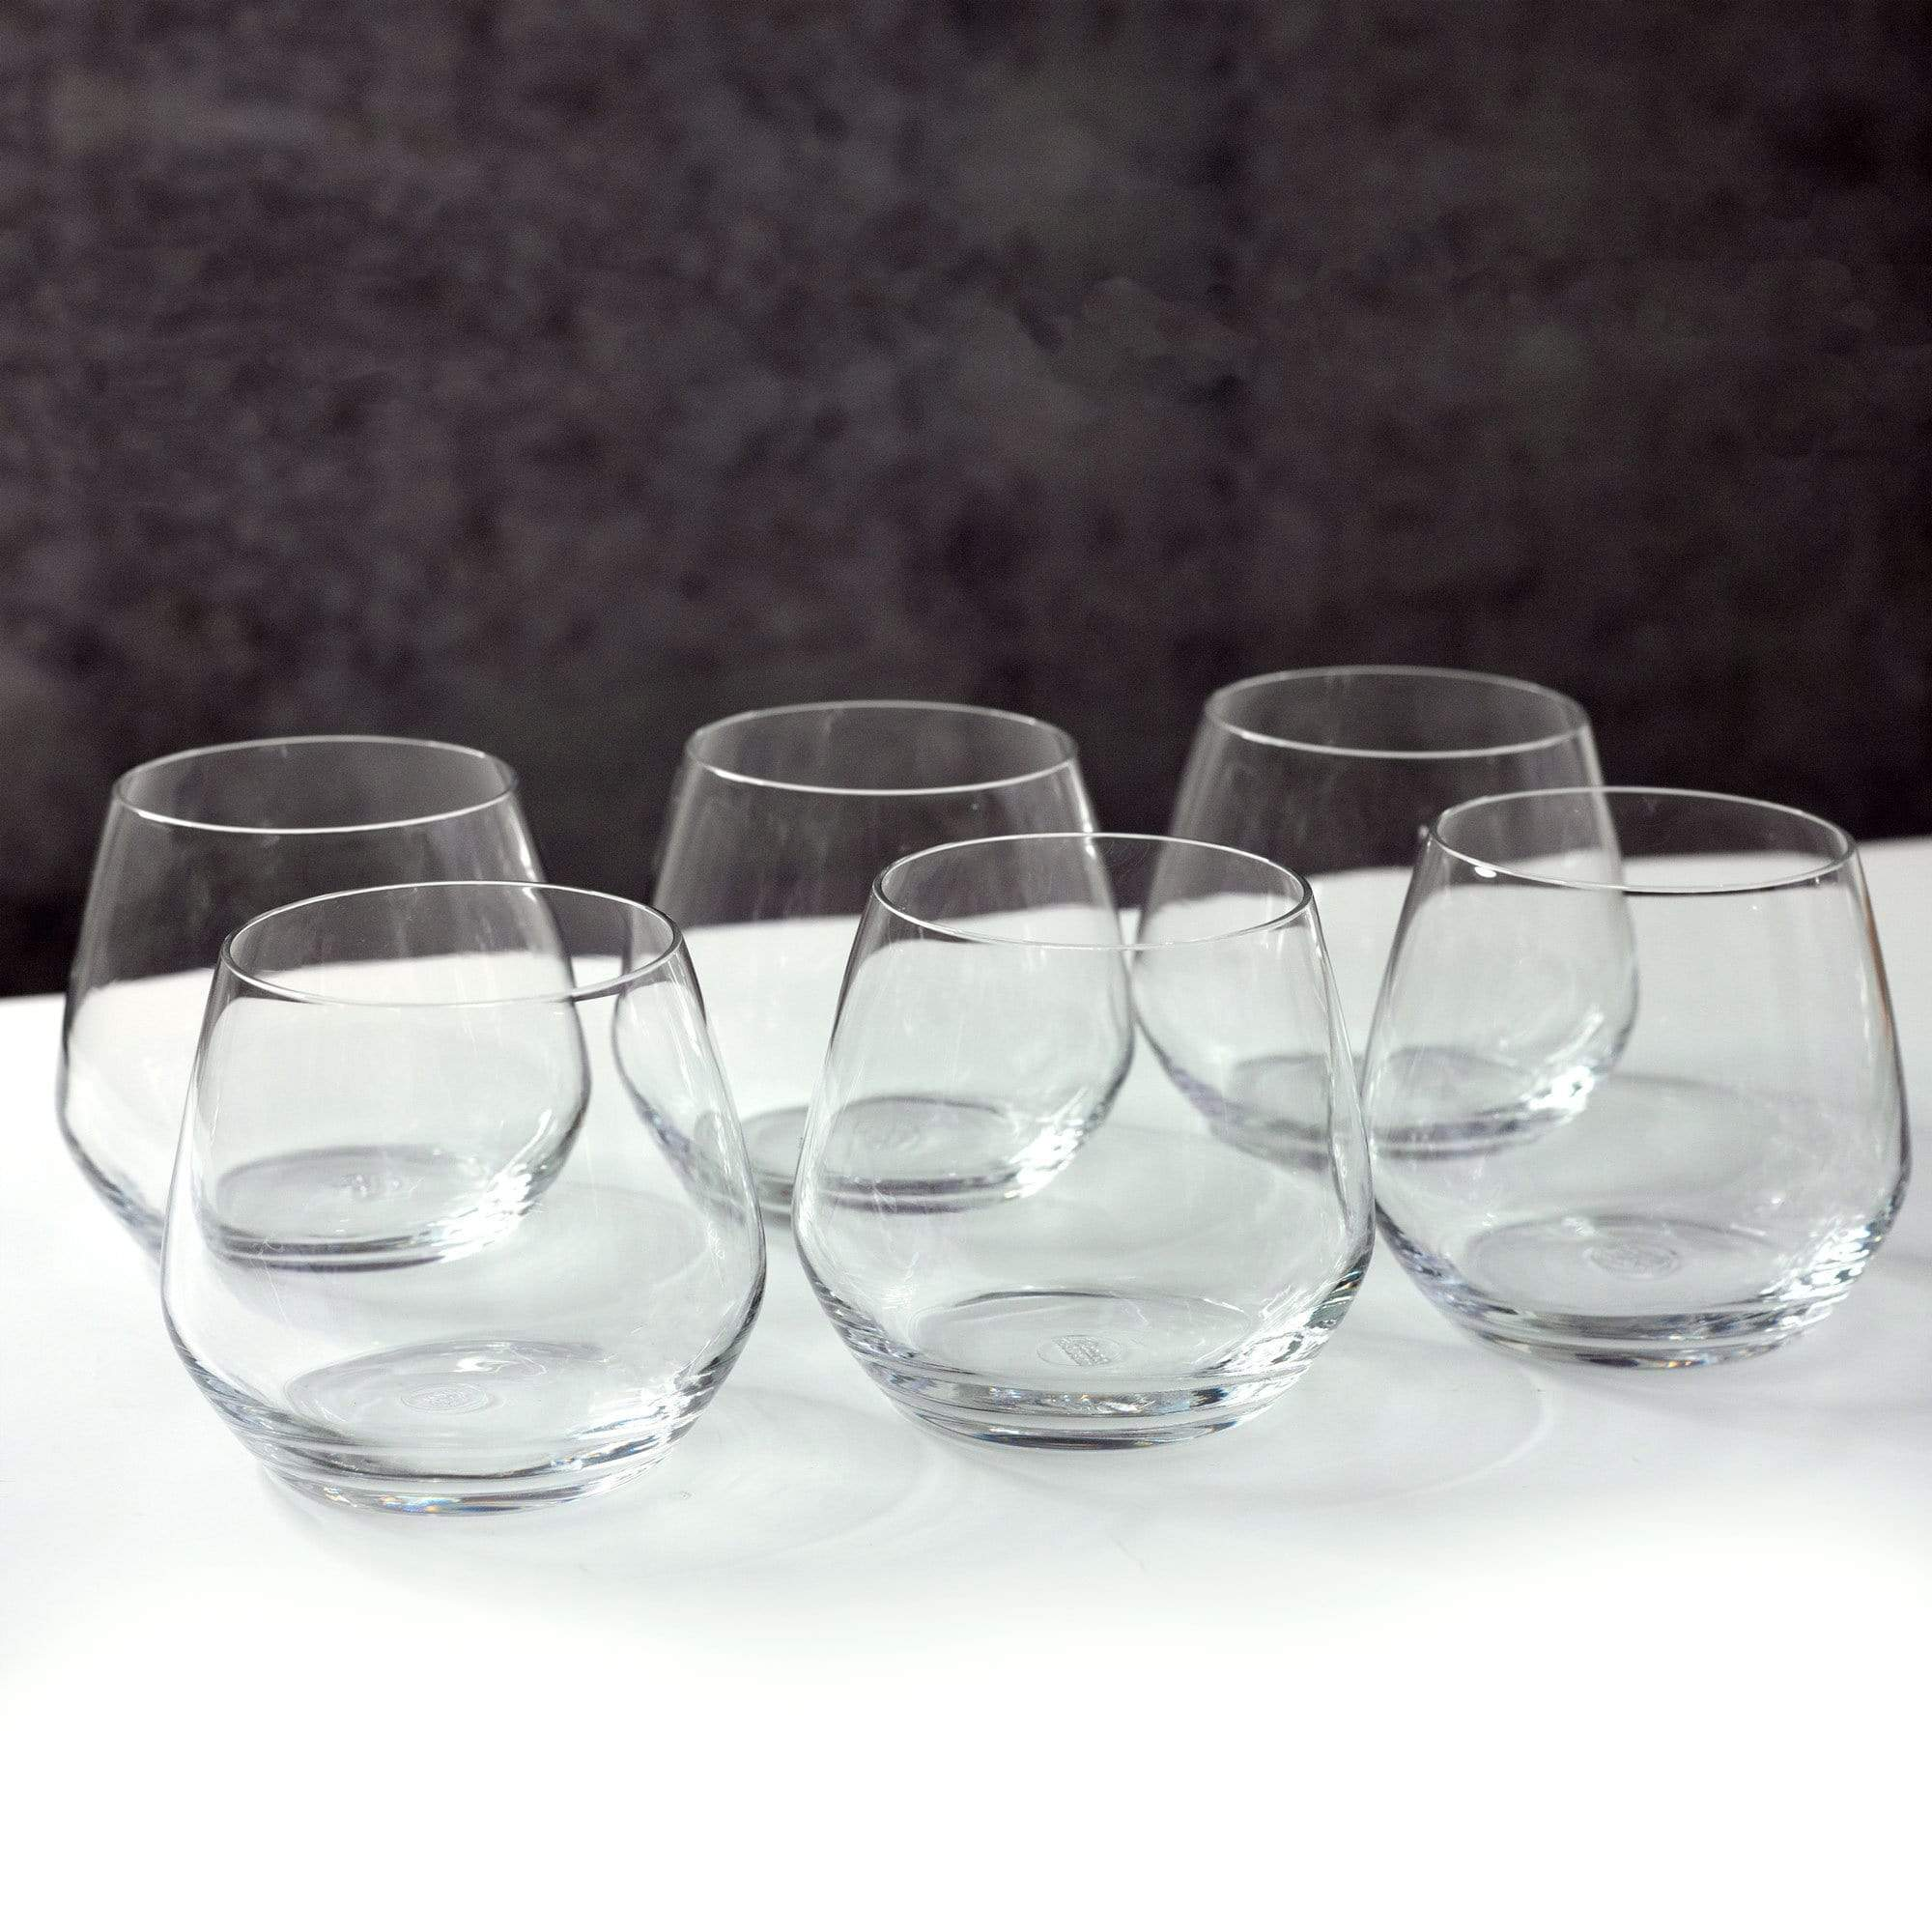 glass lexington 34.5cl tumbler set of 6